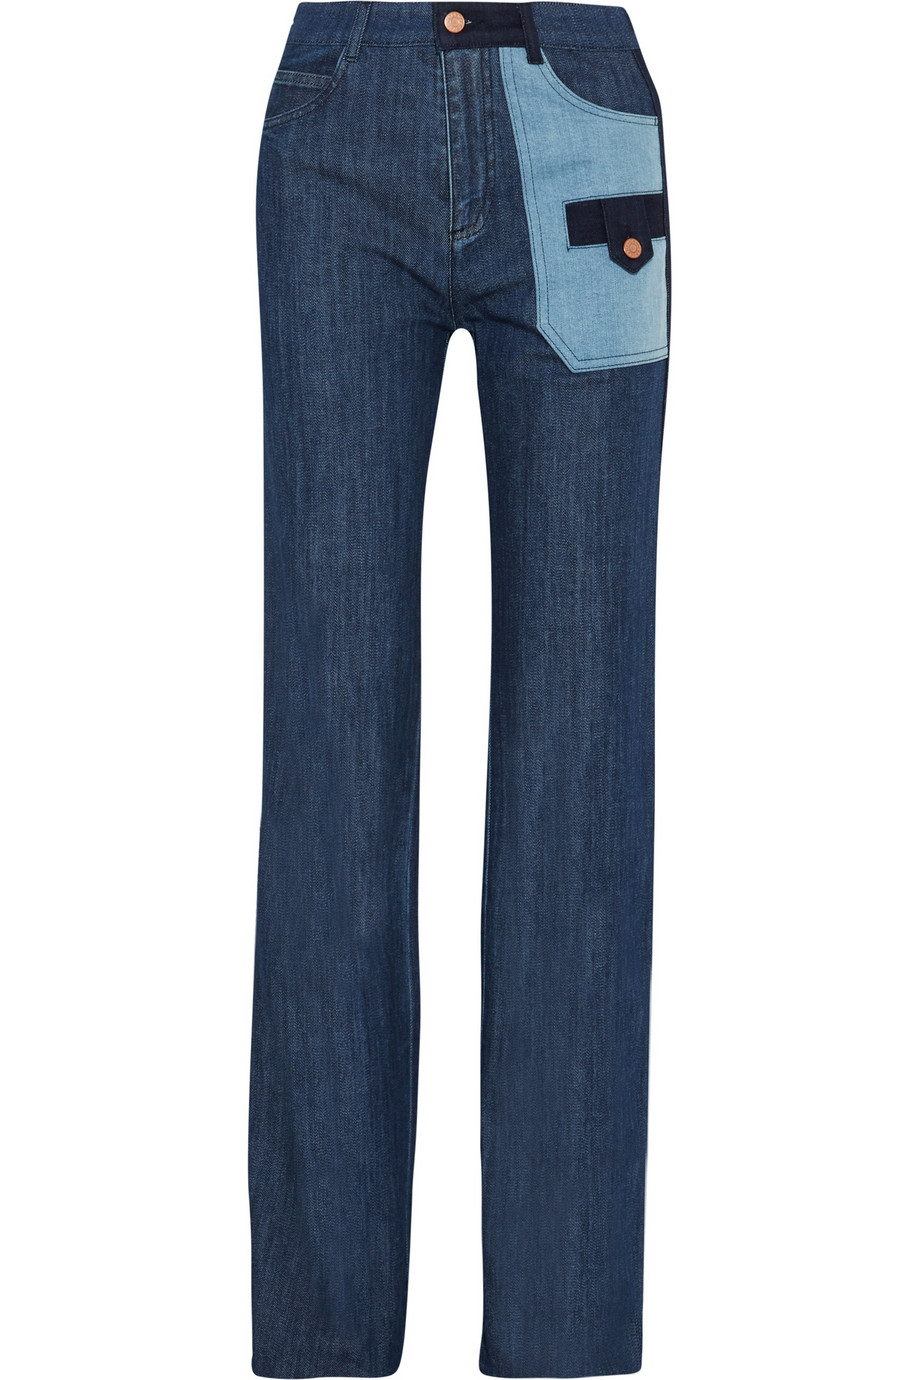 See by Chloe  jeans - was $315, now $221